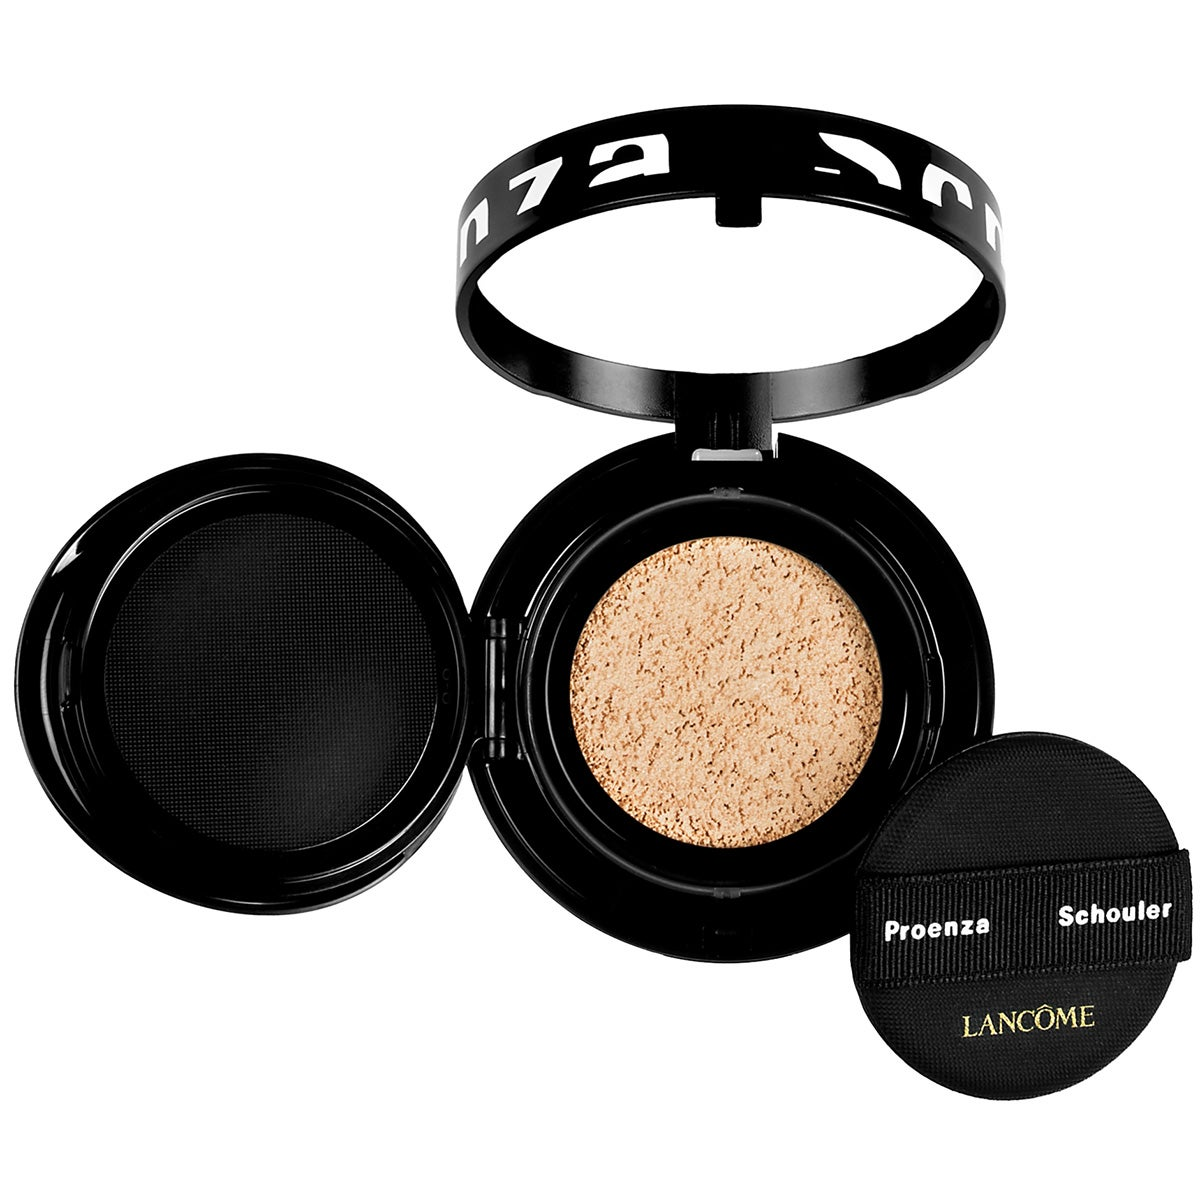 Lancôme x Proenza Schouler Cushion Highlighter